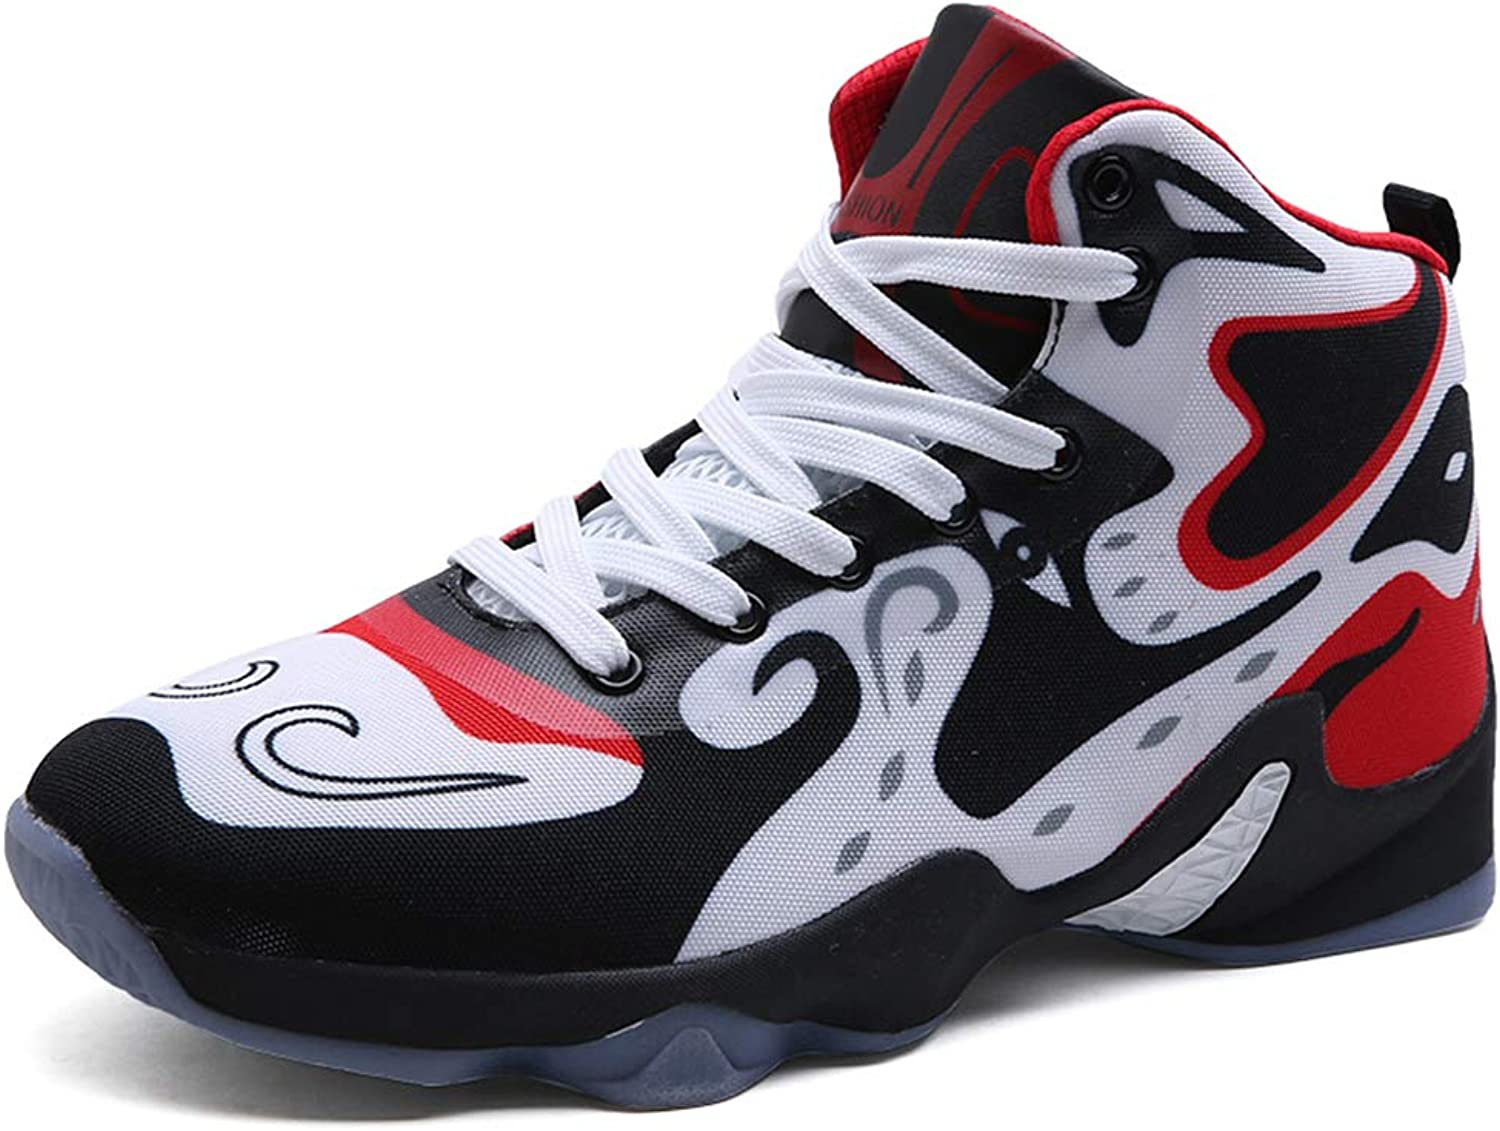 No.66 Town Men's Fashion Youth Outdoor Shock Absorption Running Sneaker Sports Basketball shoes Boys